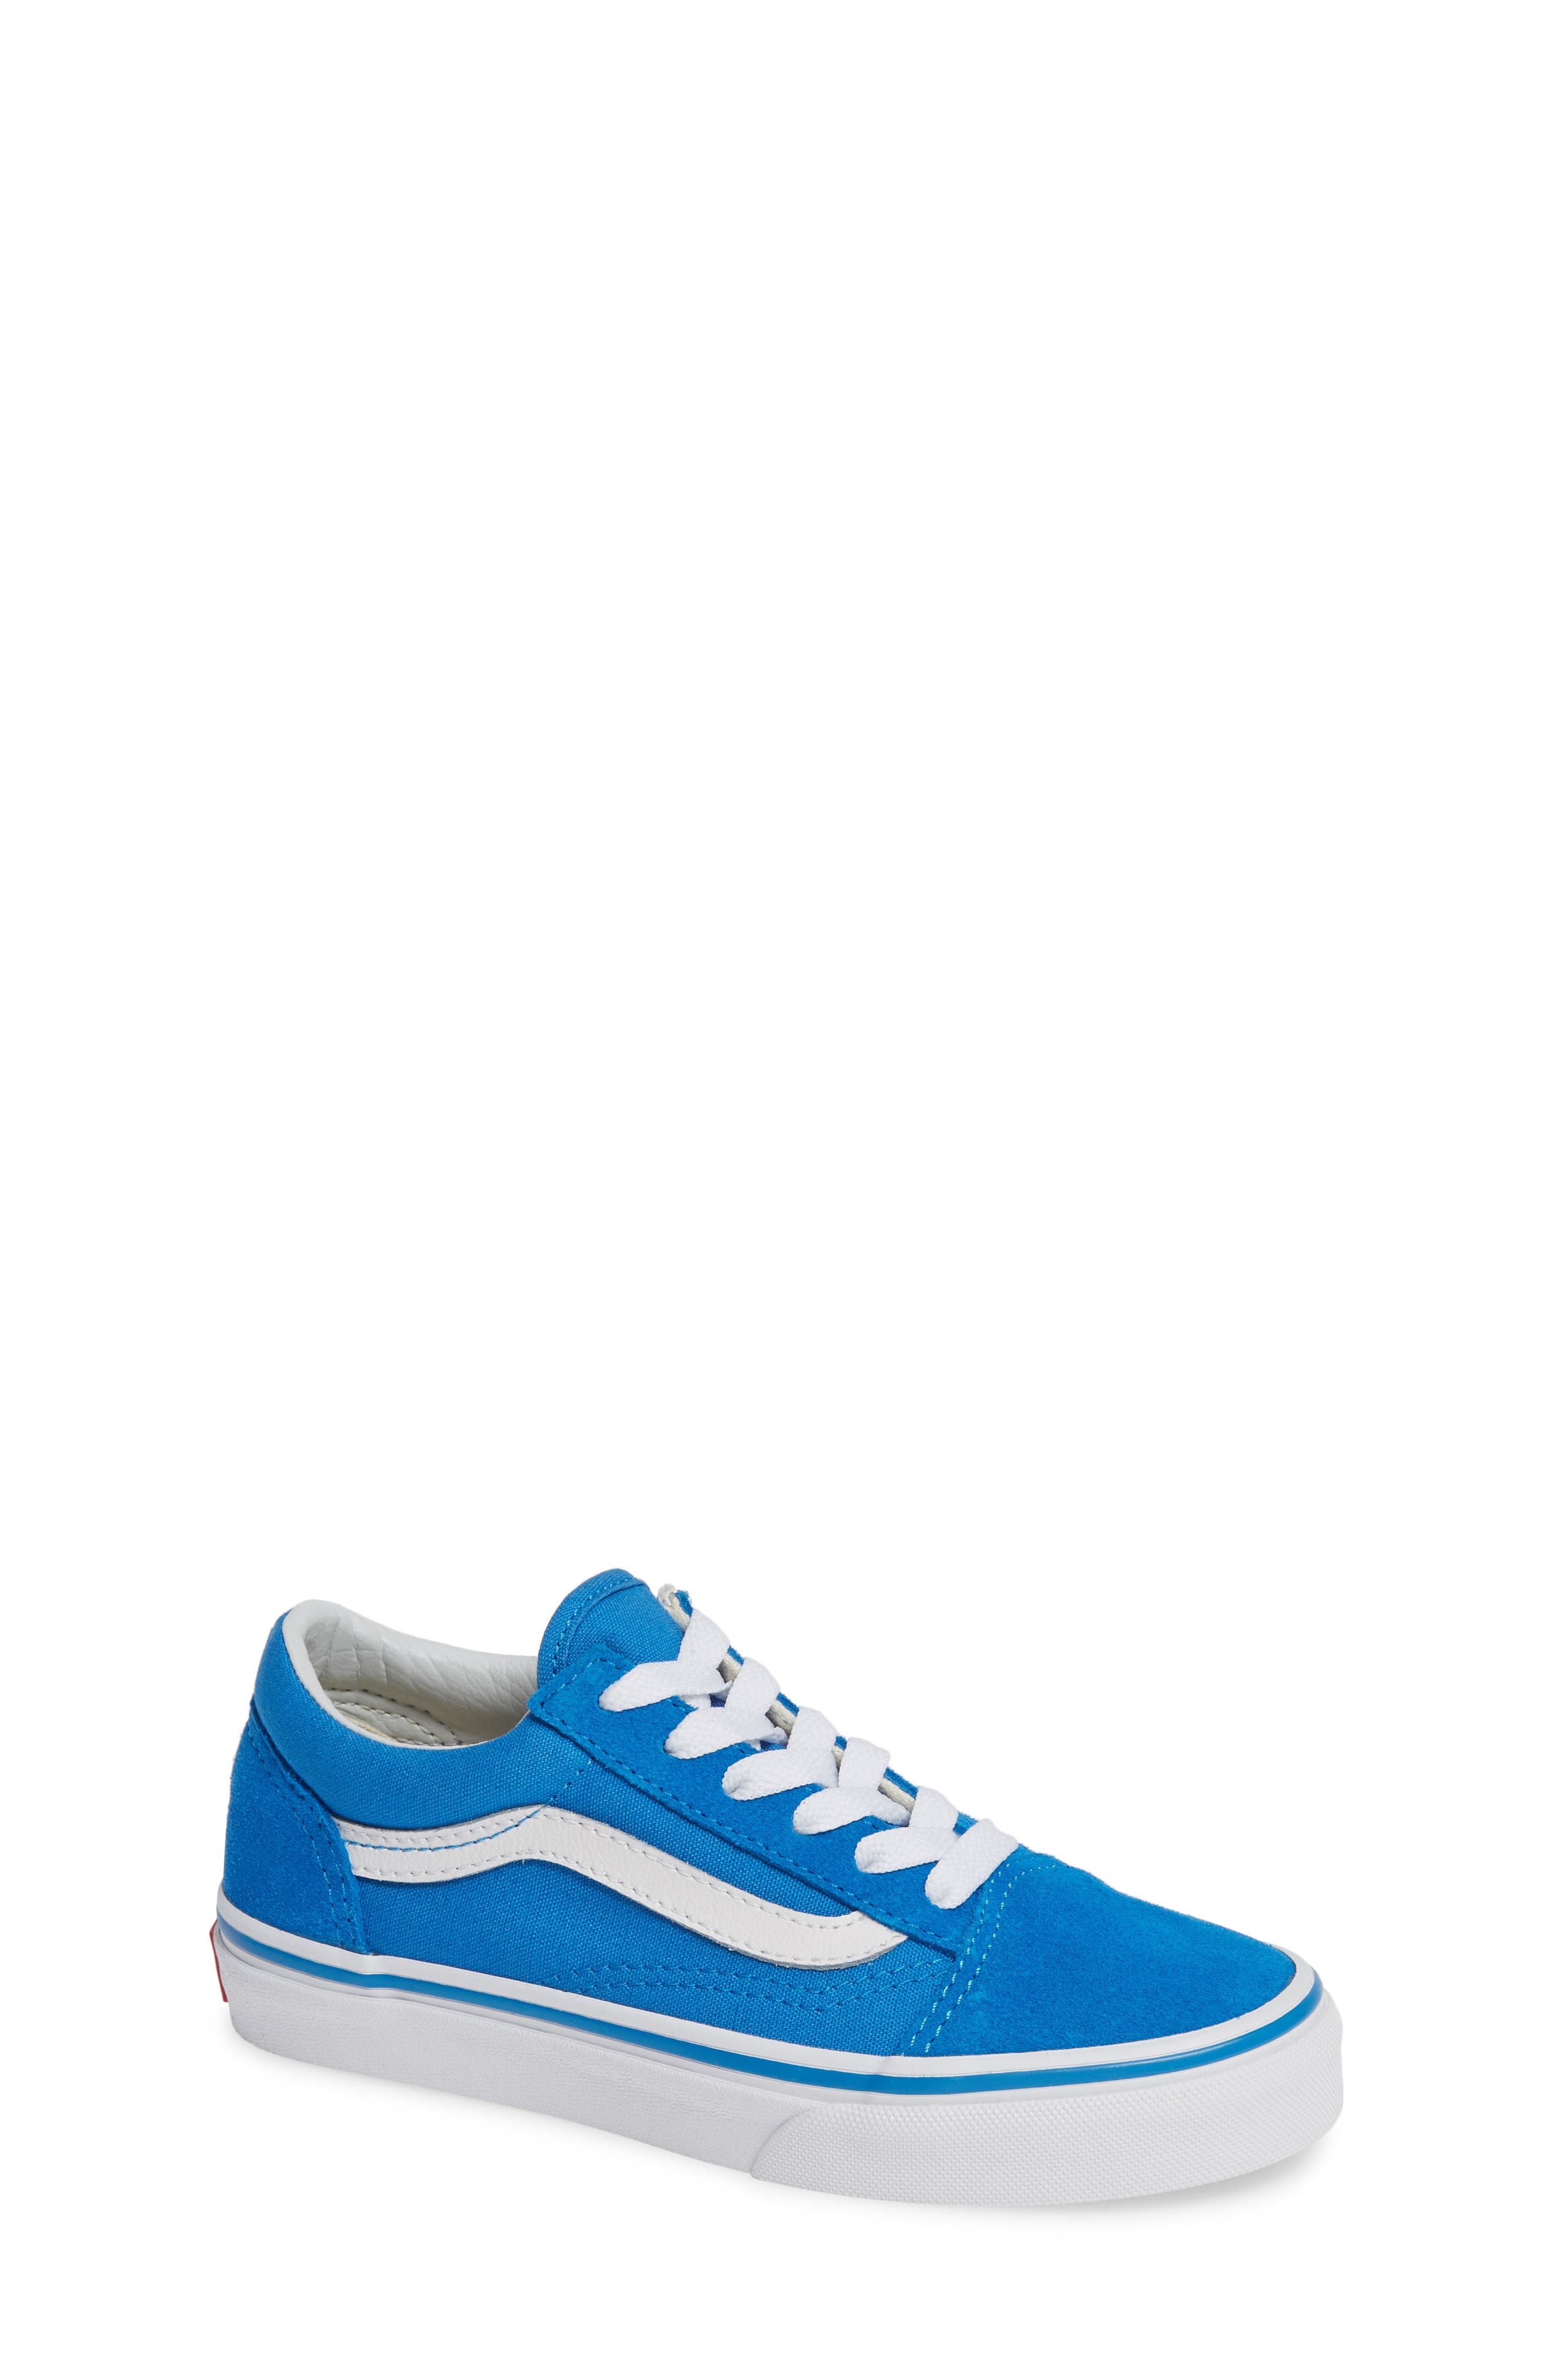 Old Skool Sneaker,                         Main,                         color, INDIGO BUNTING/ TRUE WHITE